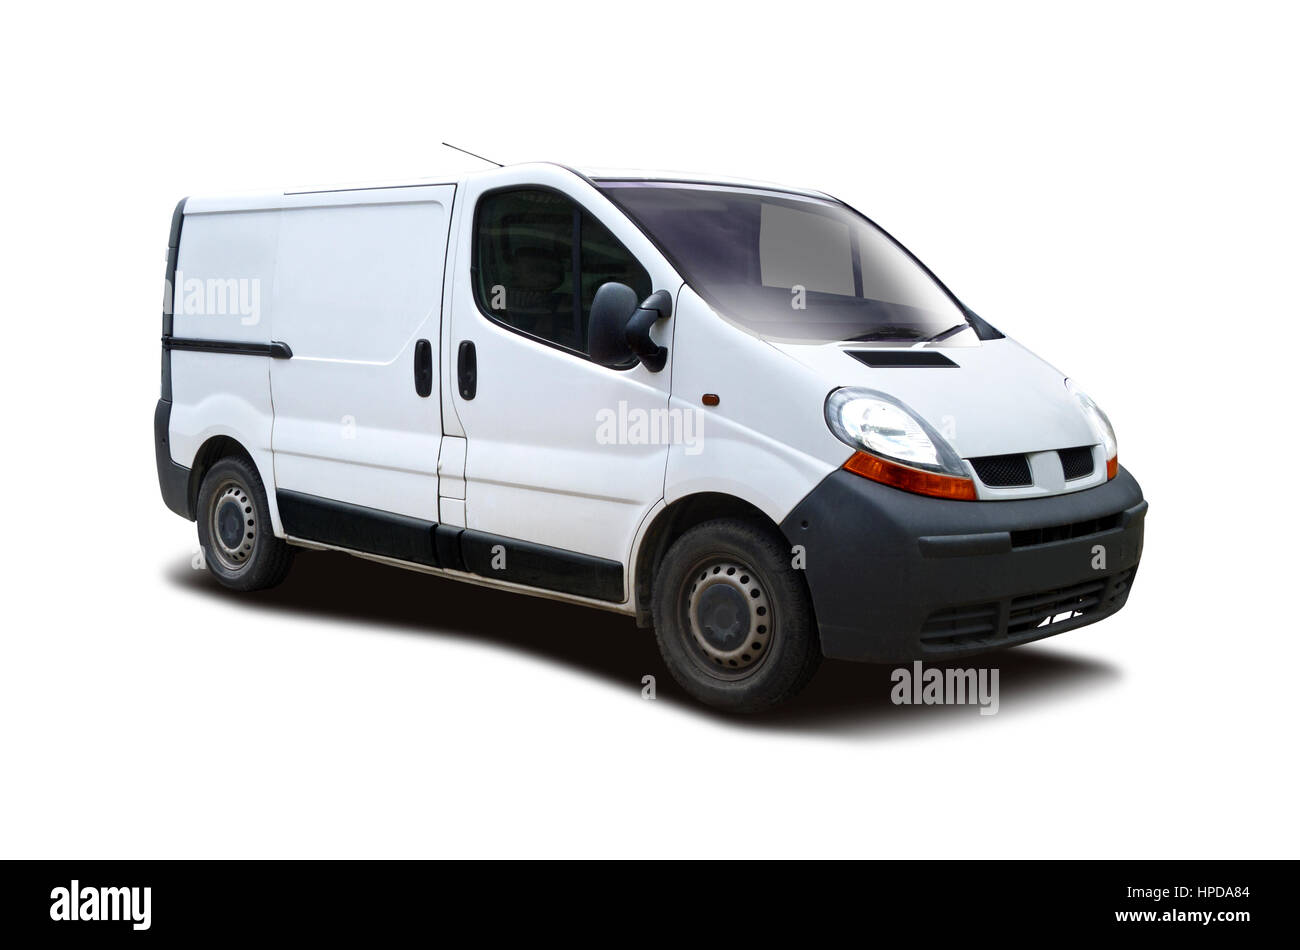 144146ab8a White Van Side Stock Photos   White Van Side Stock Images - Alamy